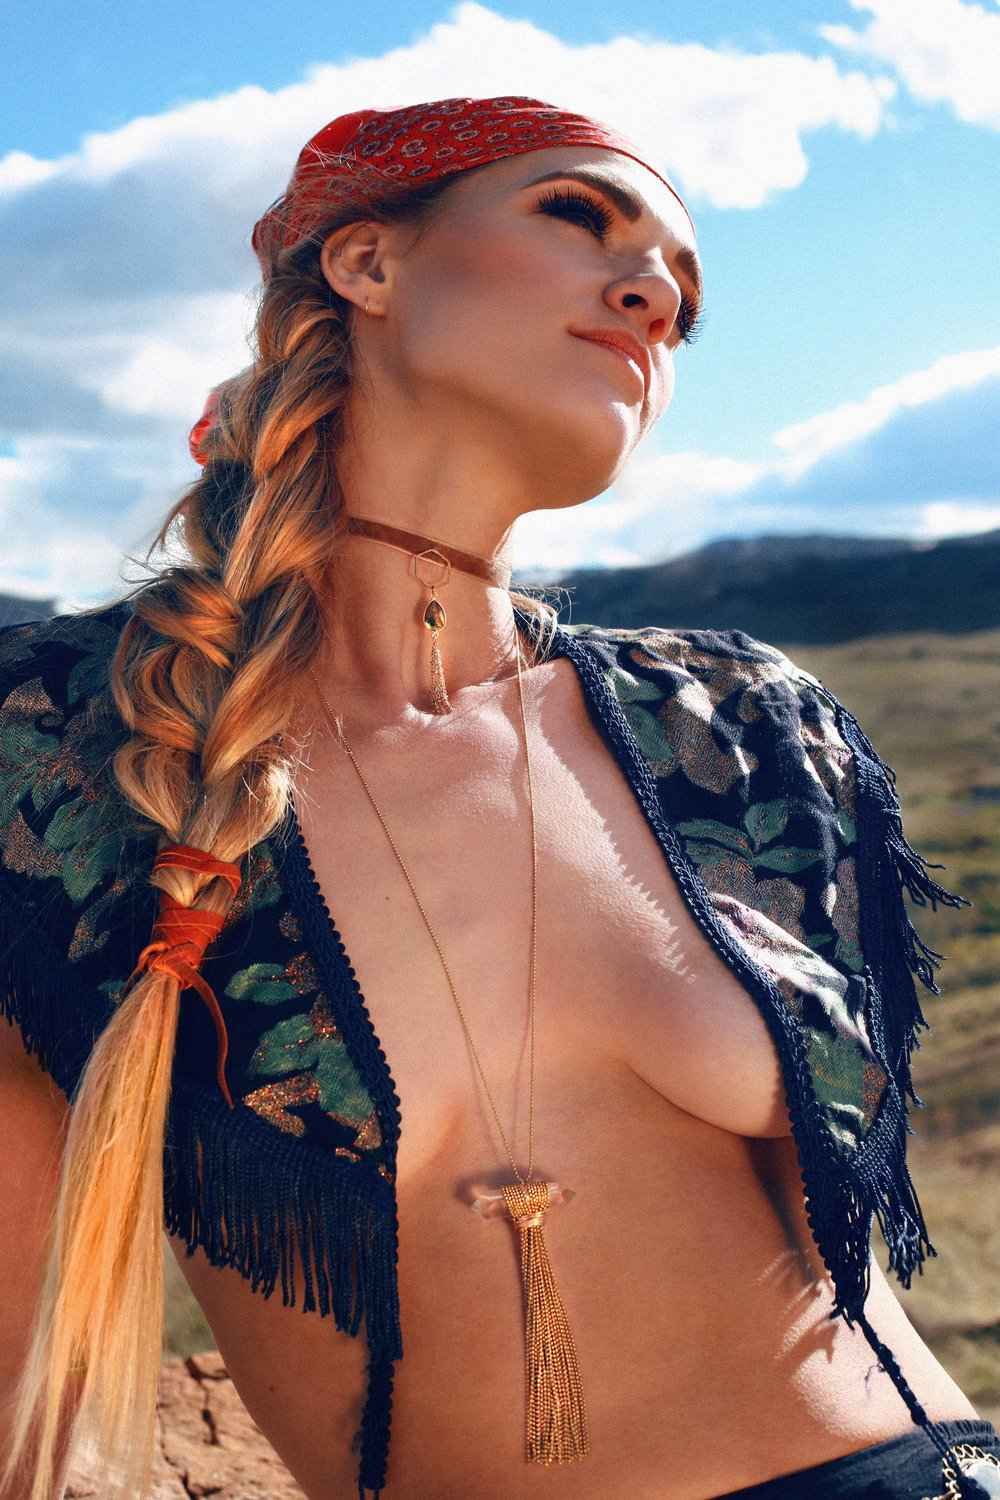 COLORADO GYPSY DREAMIN' - Photo Shoot Story shot by Alyssa Risley - IG @alyssarisley #BLUESKY #CLOUDS #EDITORIAL #JEWELRY